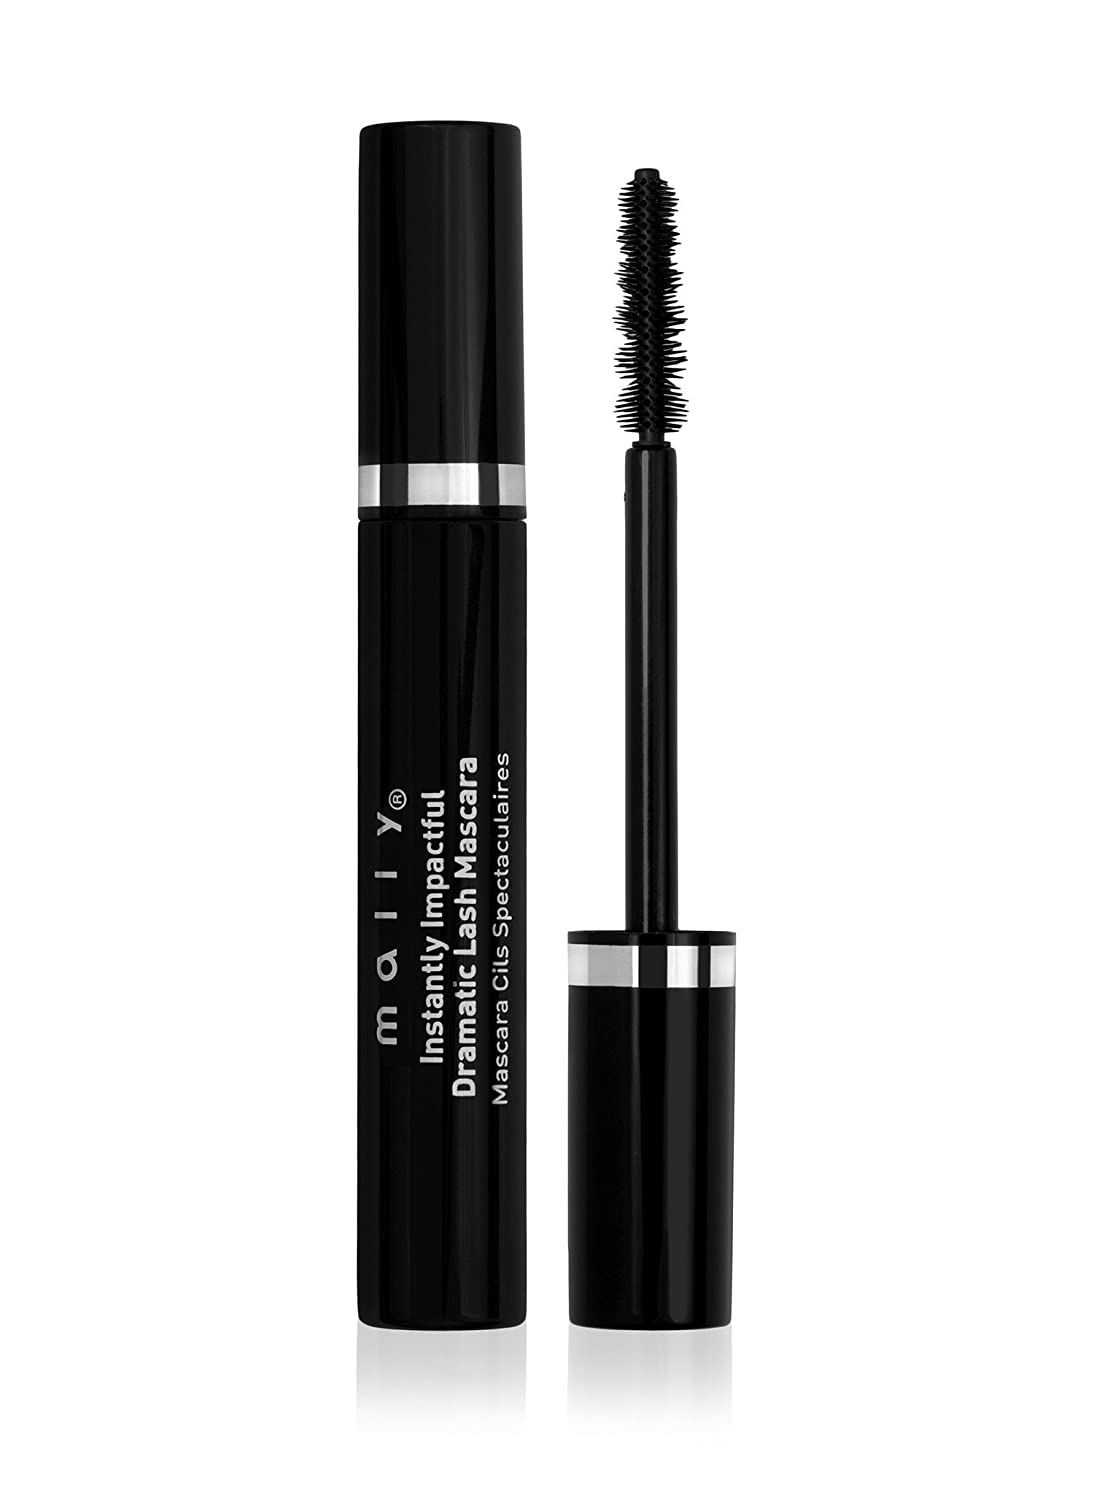 Mally Beauty – Instantly Impactful Mascara – Infused with Avocado Oil & Vitamin B5 to Condition and Nourish Lashes – Jet Black, 3-D Finish – 0.31 Ounce – MY.2102